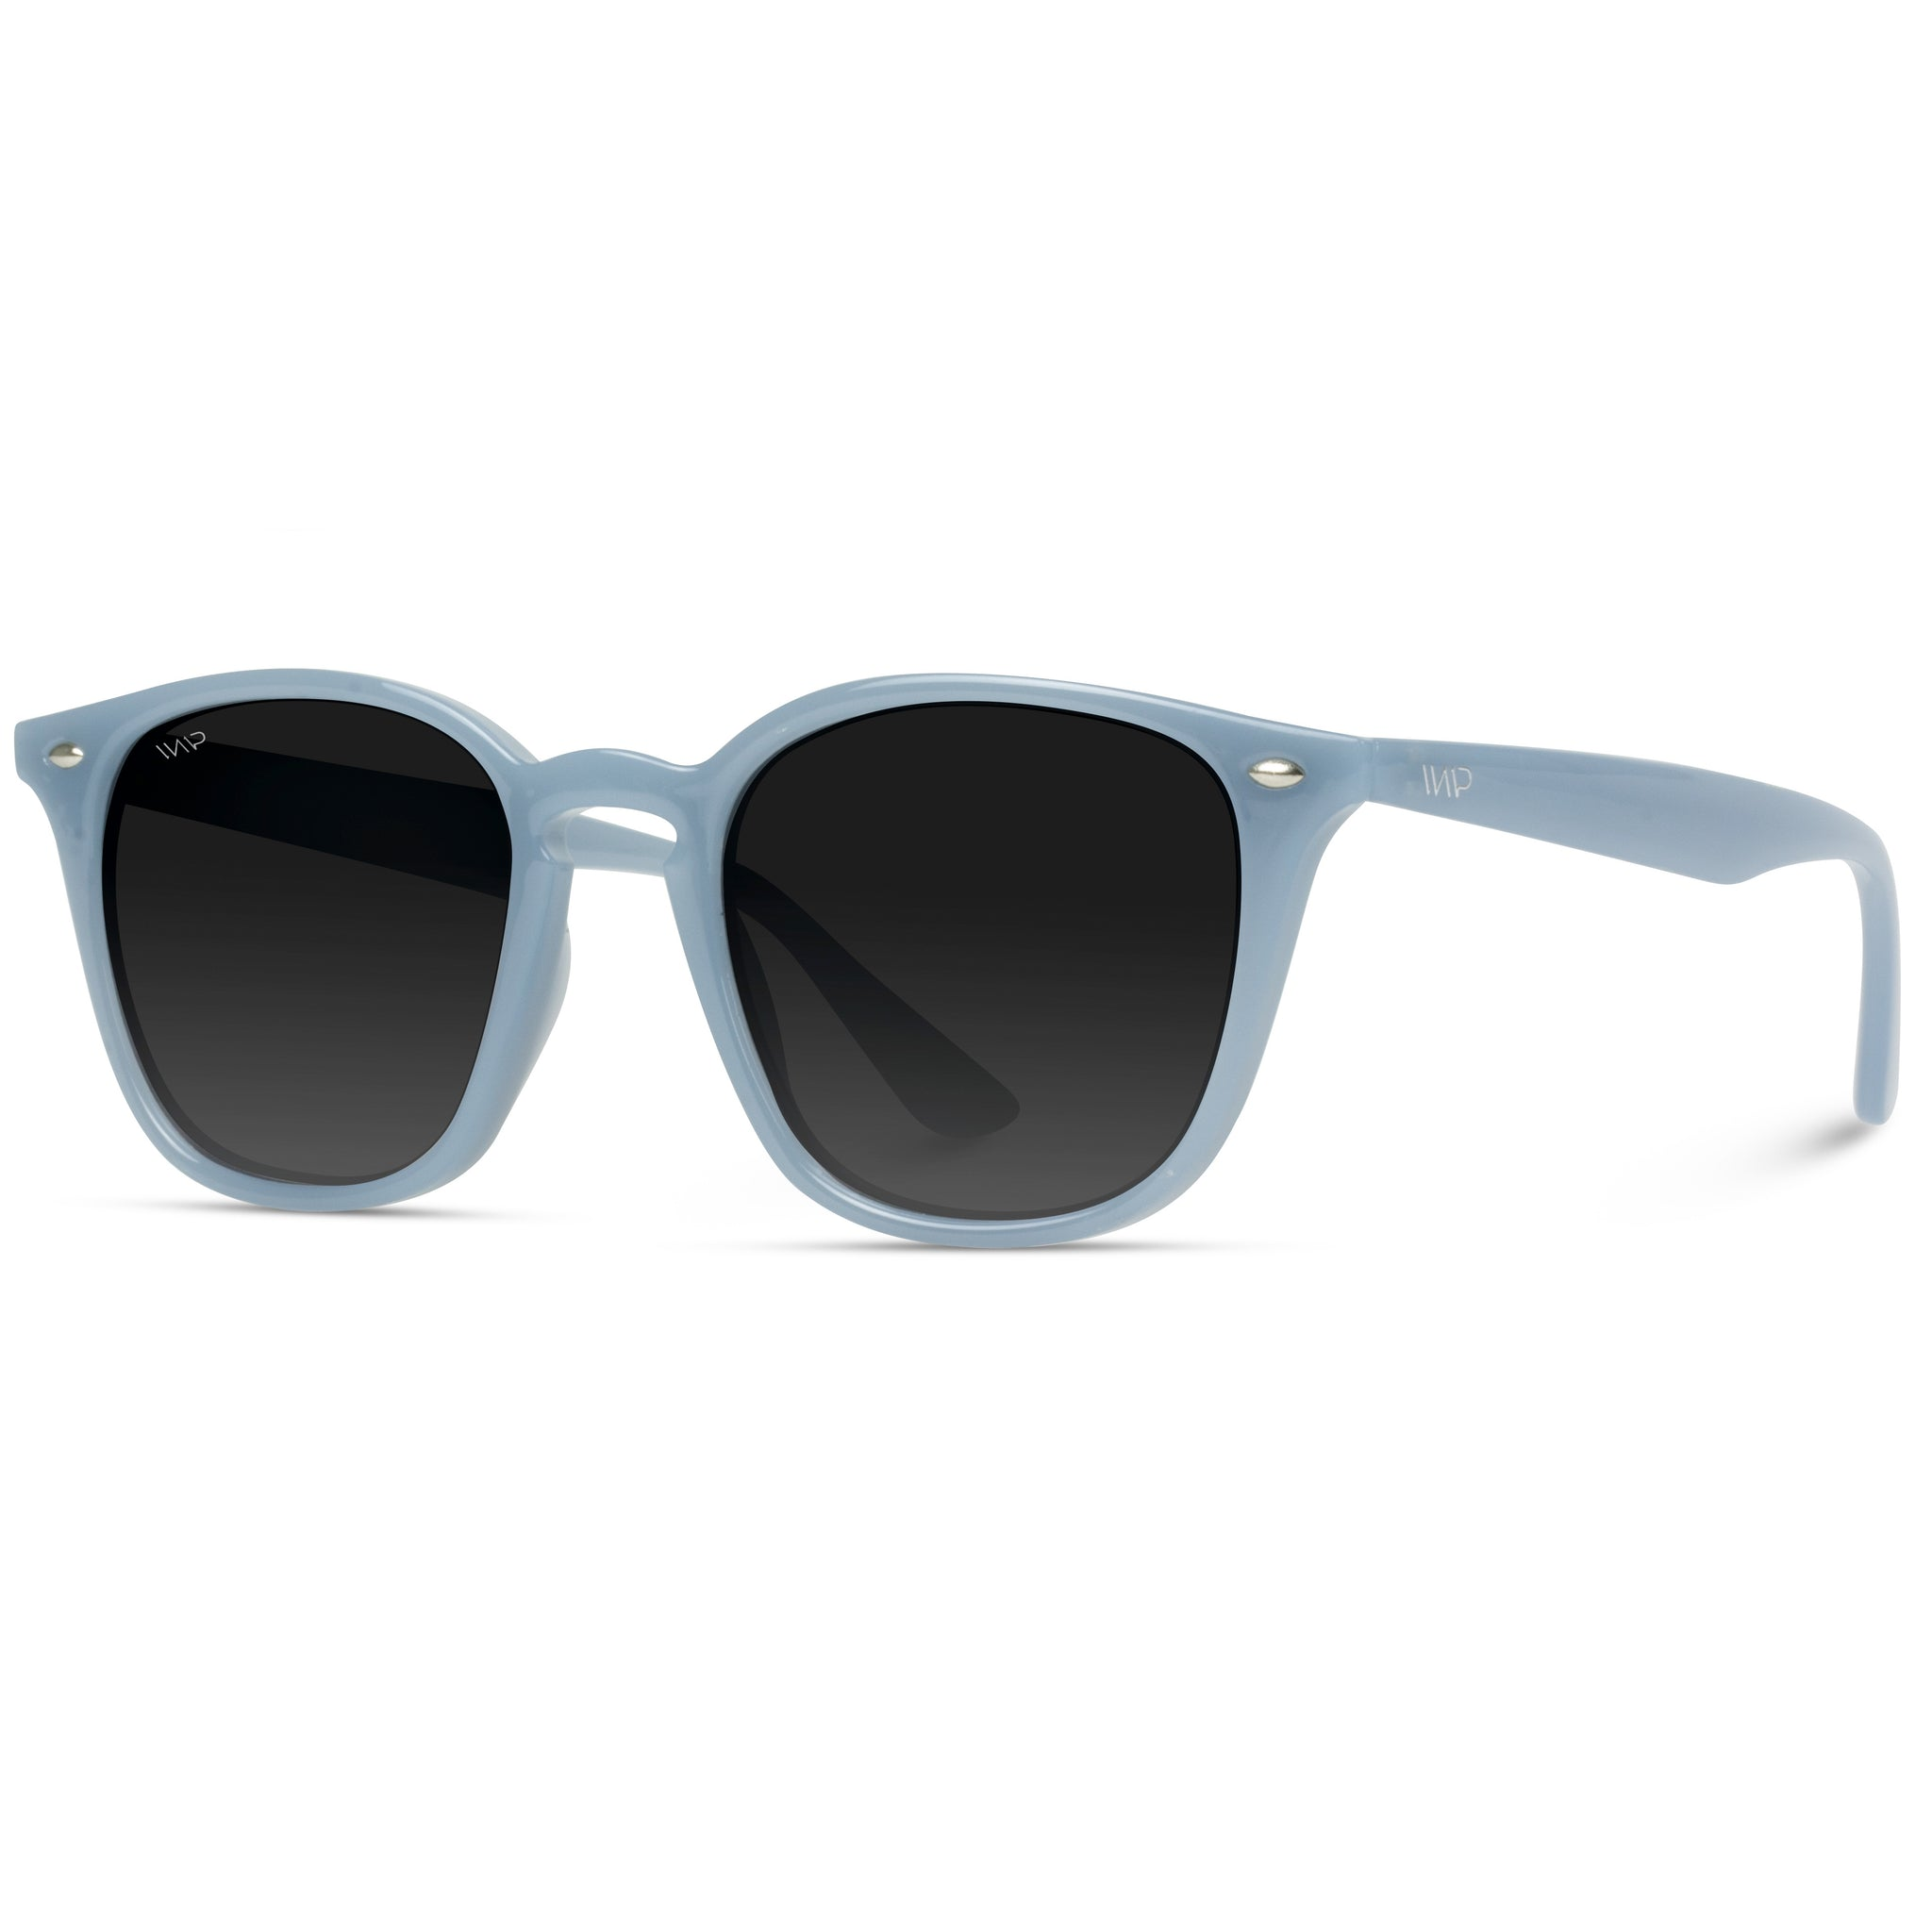 Jax - Slim Square Mirror Lens Retro Horn Rimmed Sunglasses